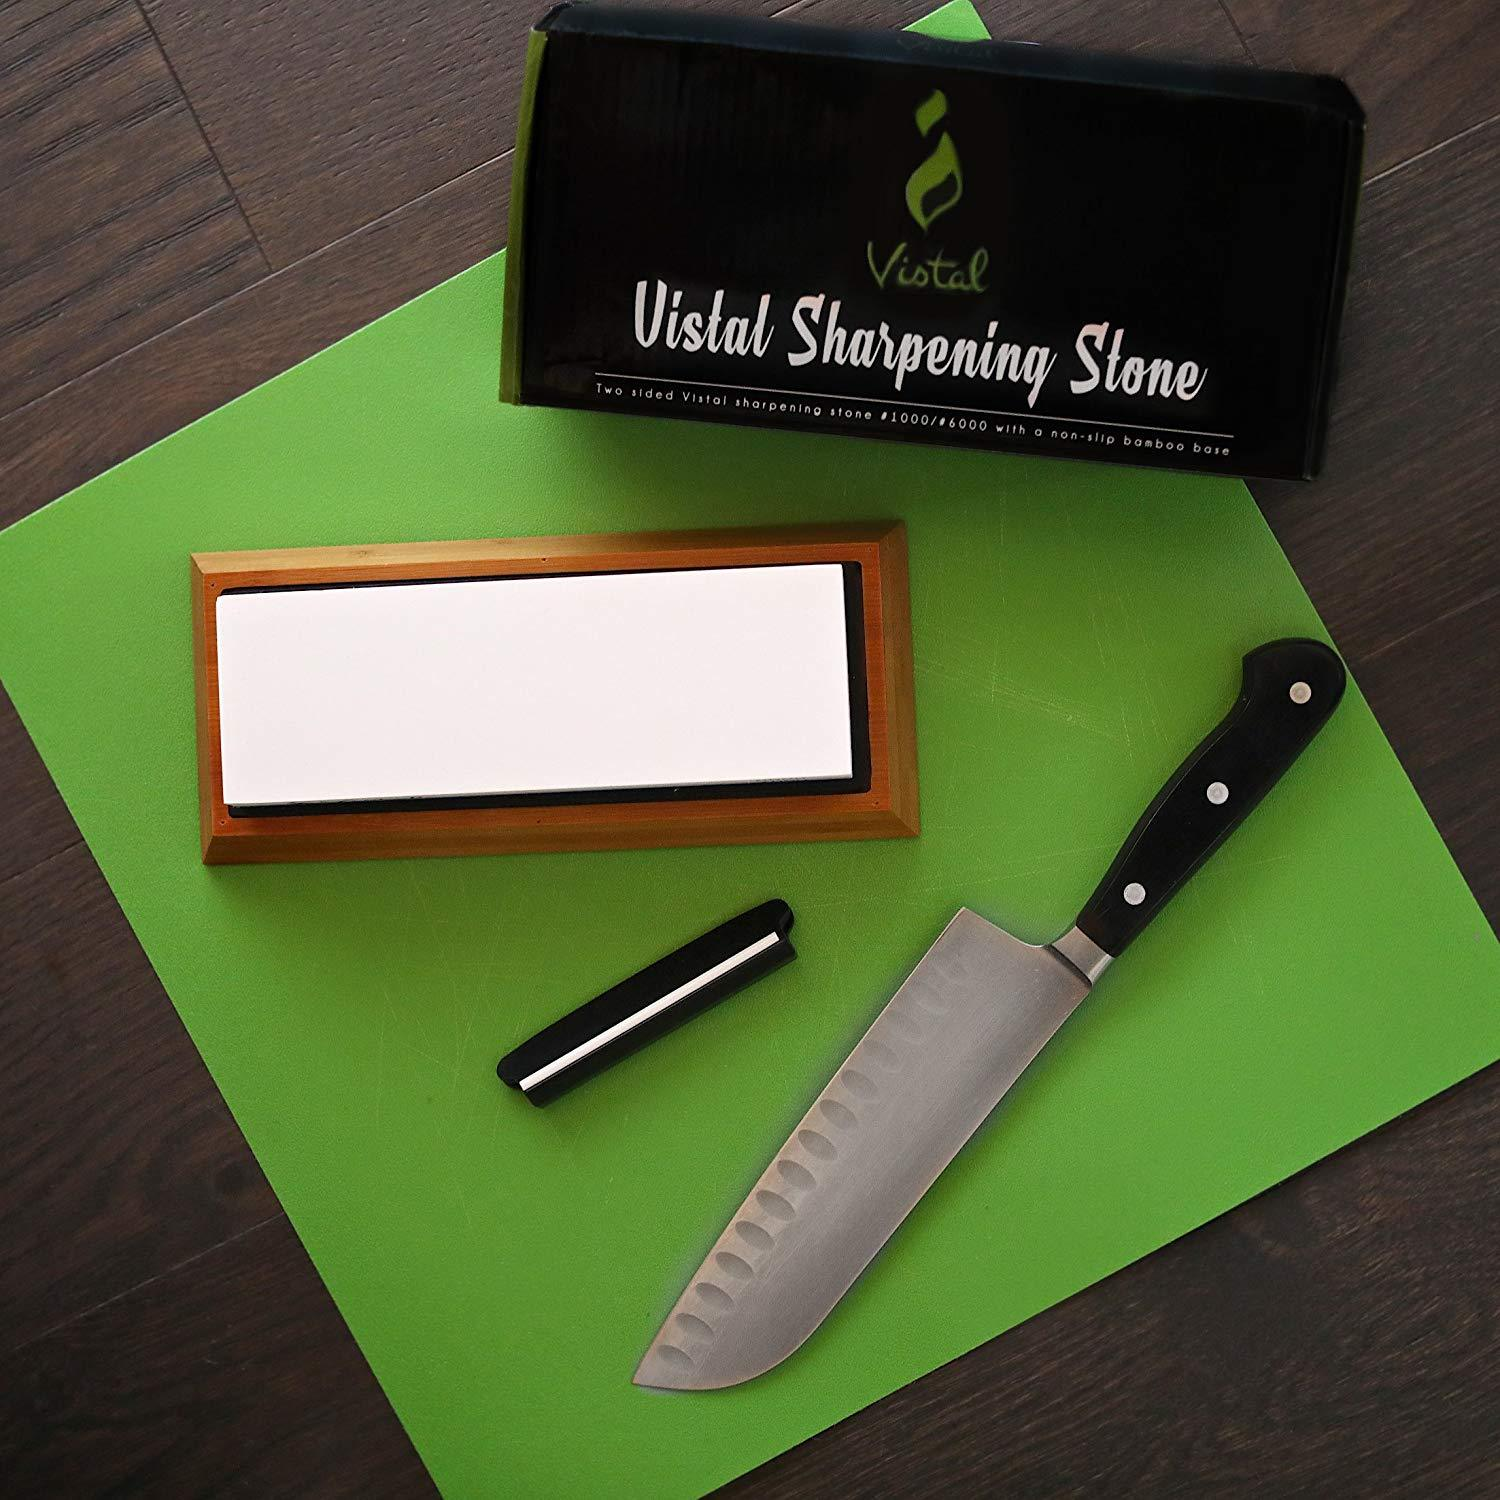 Premium Sharpening Stone | Sharpen Outdoor/Survival Knives | Dual Grit 1000/6000 | Non-Slip Bamboo Base & Angle Guide